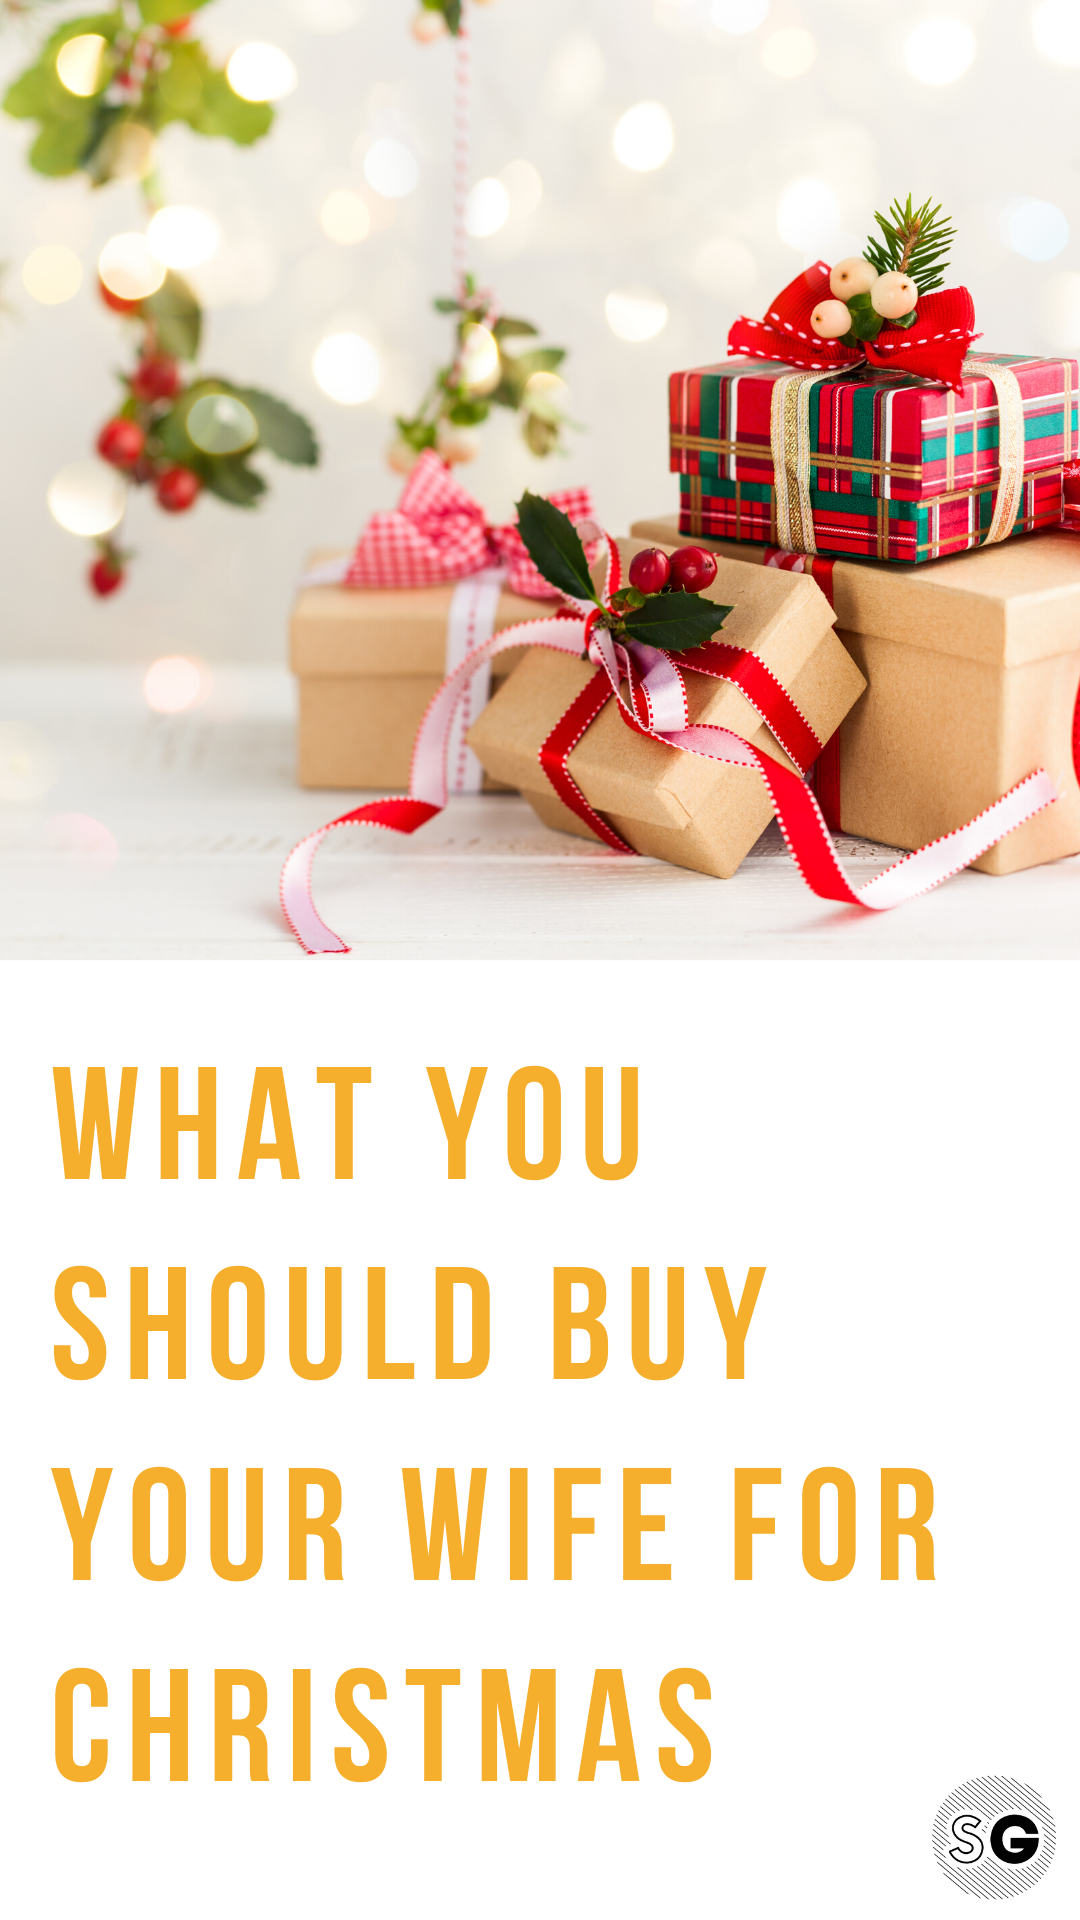 Need ideas on what to buy your wife or girlfriend for the